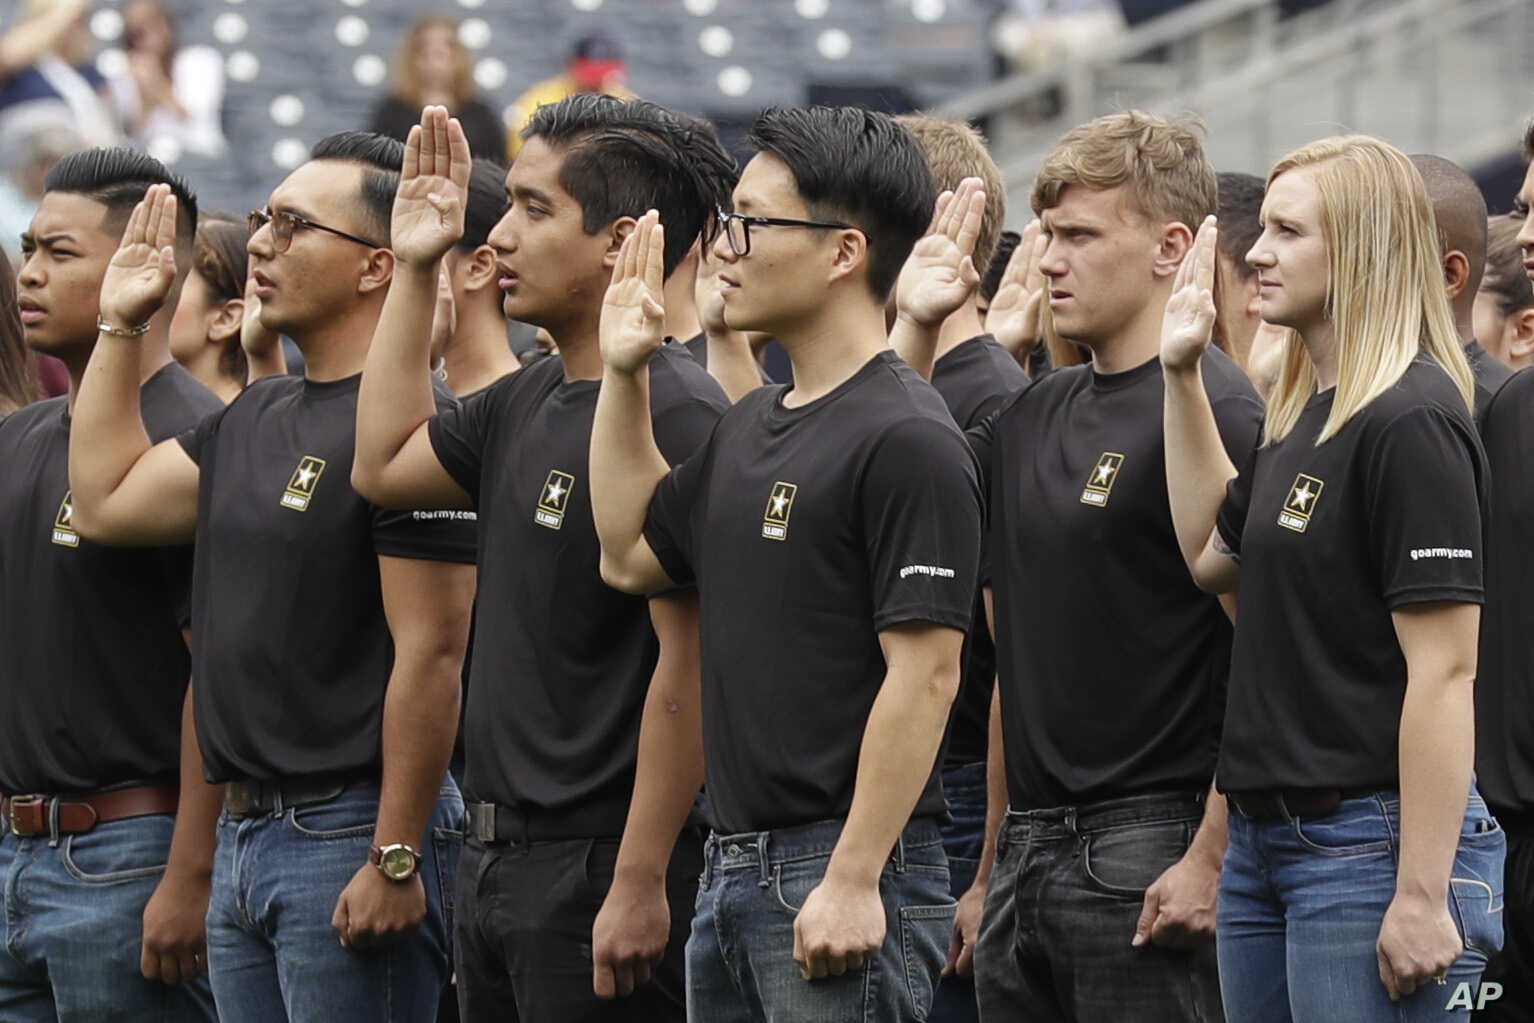 Army Misses 2018 Recruiting Goal | Voice of America - English